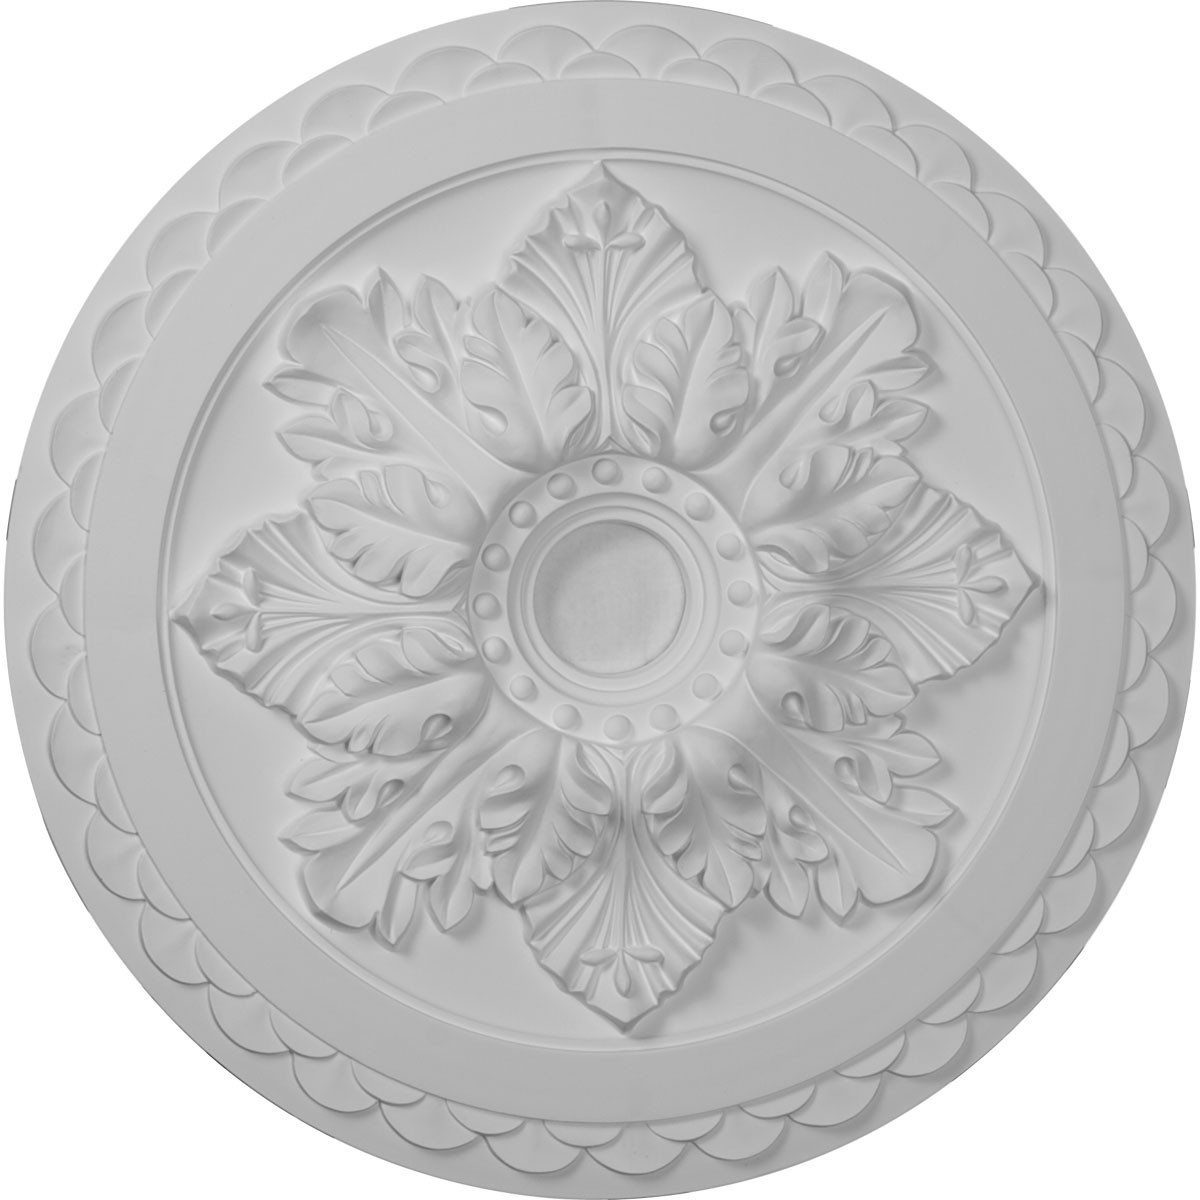 """EM-CM23BO - 23 5/8""""OD x 3""""ID x 2""""P Bordeaux Deluxe Ceiling Medallion (Fits Canopies up to 4"""")"""